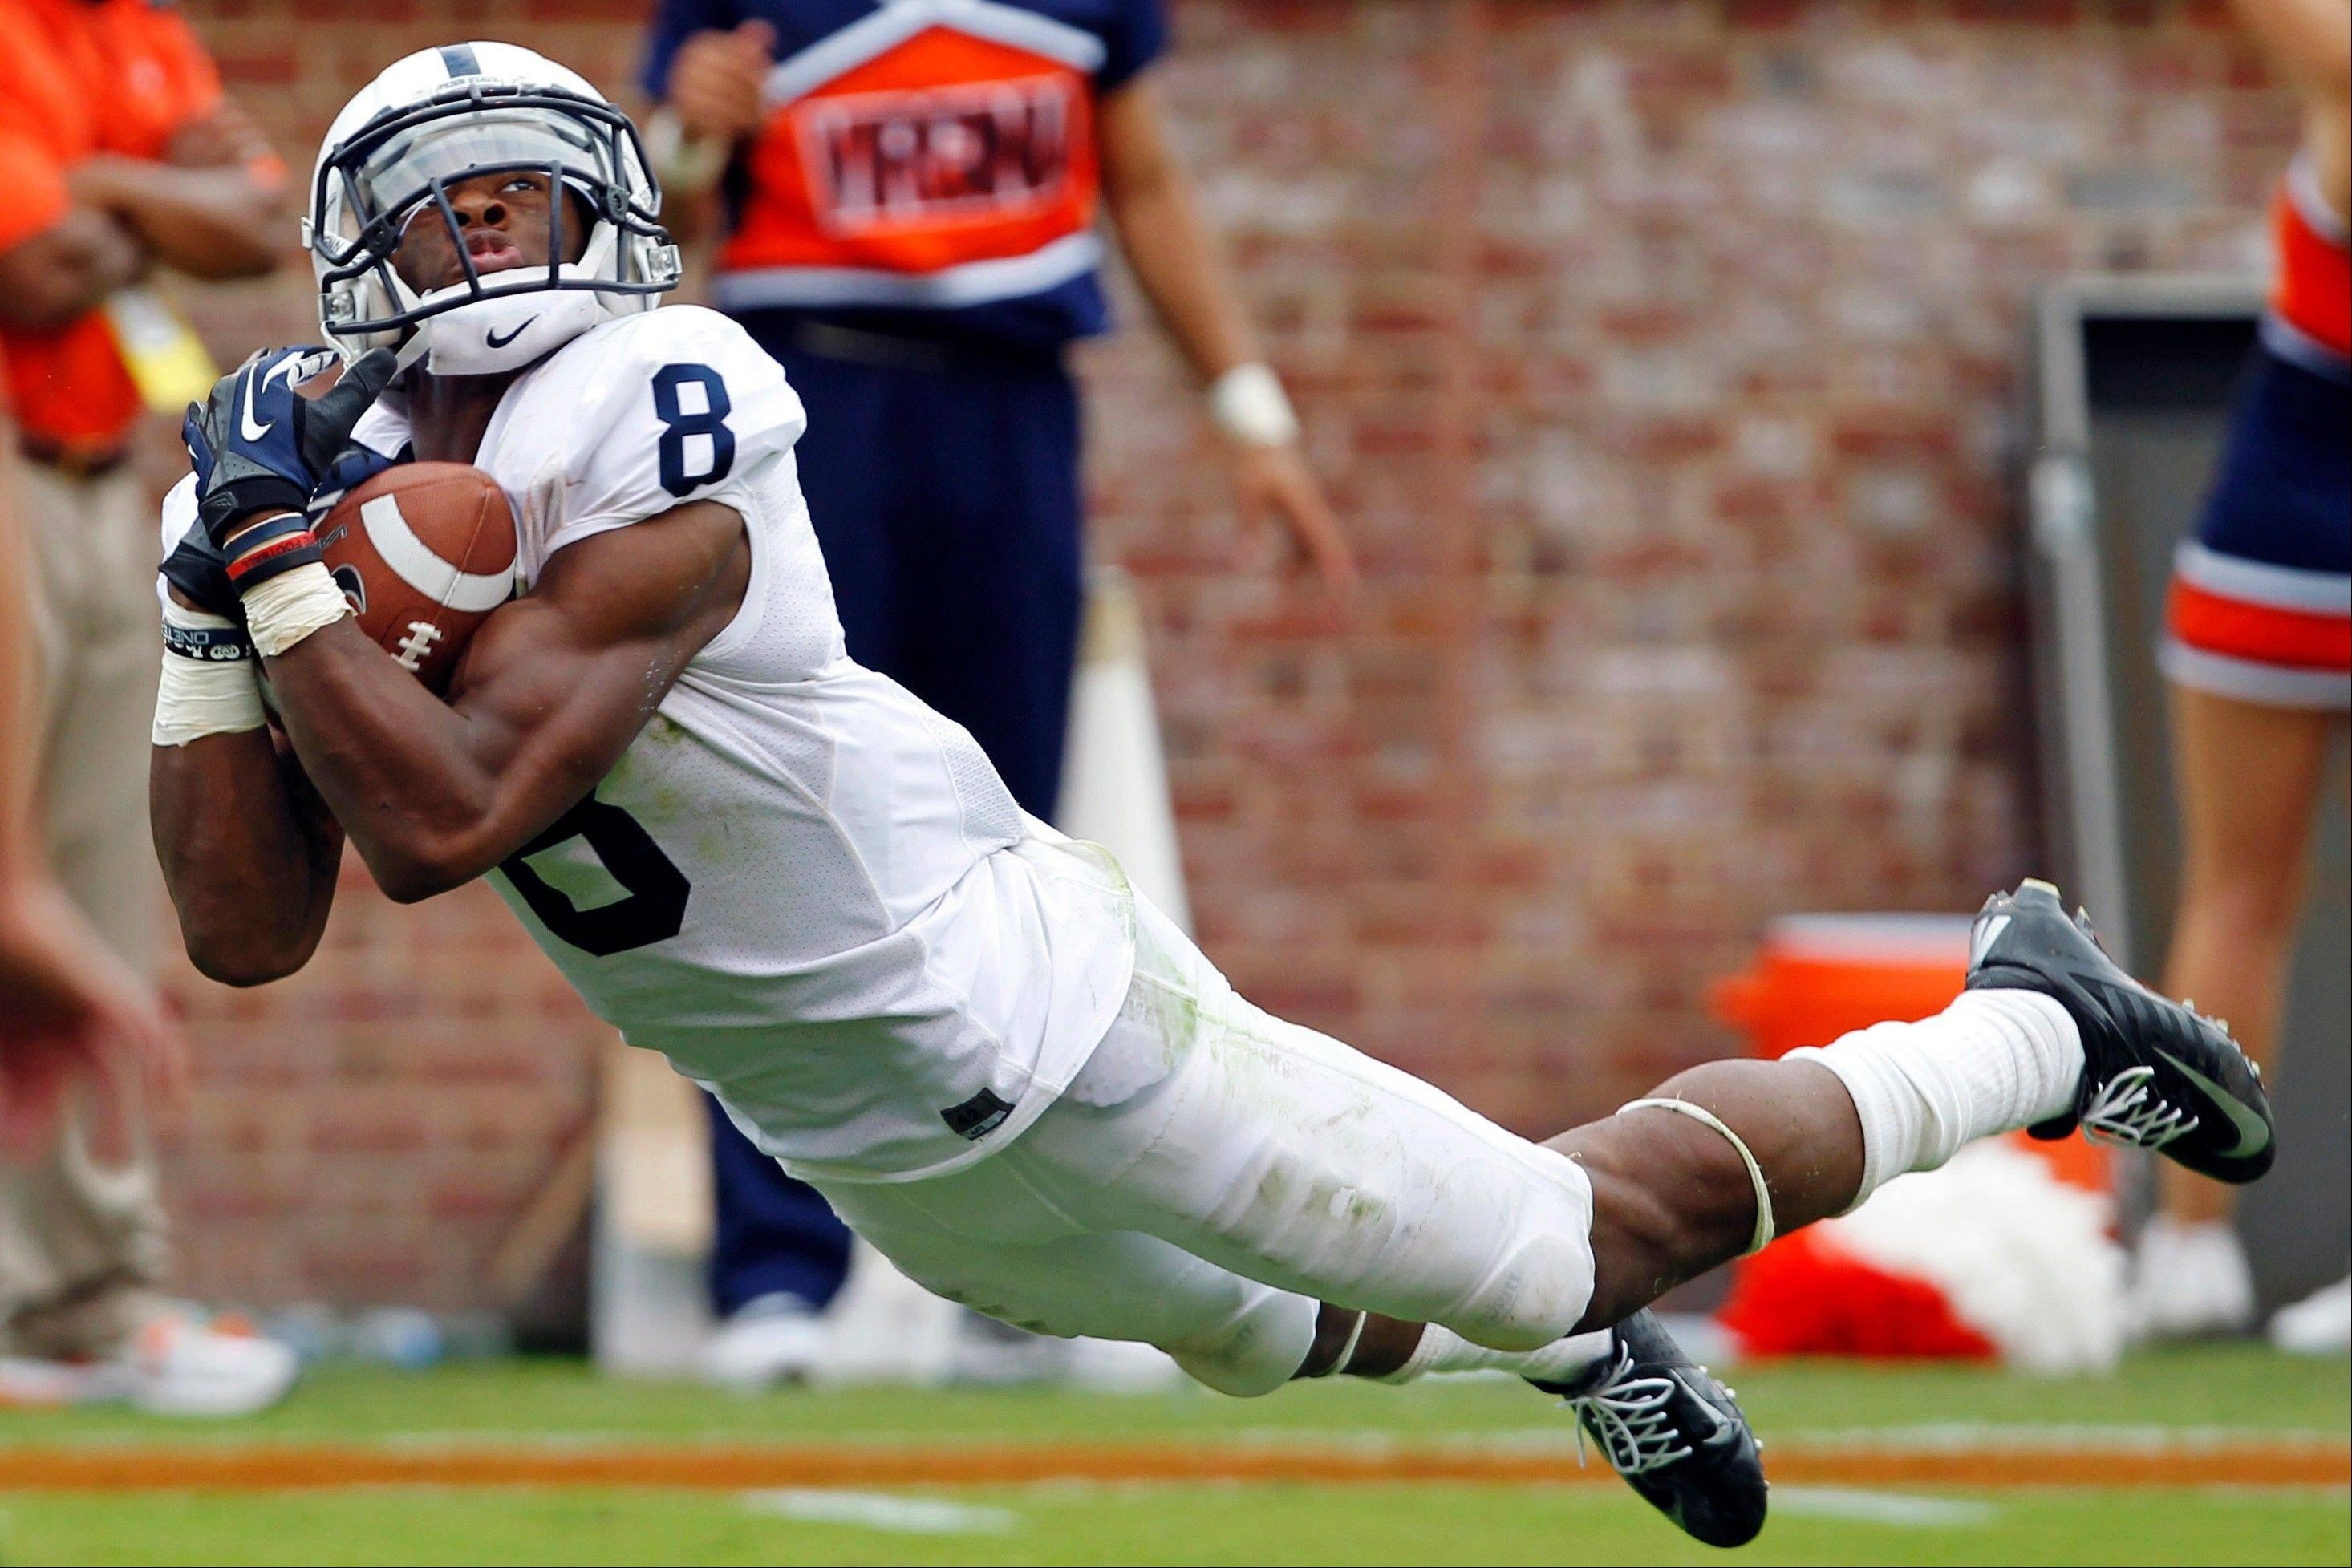 Penn State wide receiver Allen Robinson makes a touchdown catch last Saturday in a loss to Virginia.